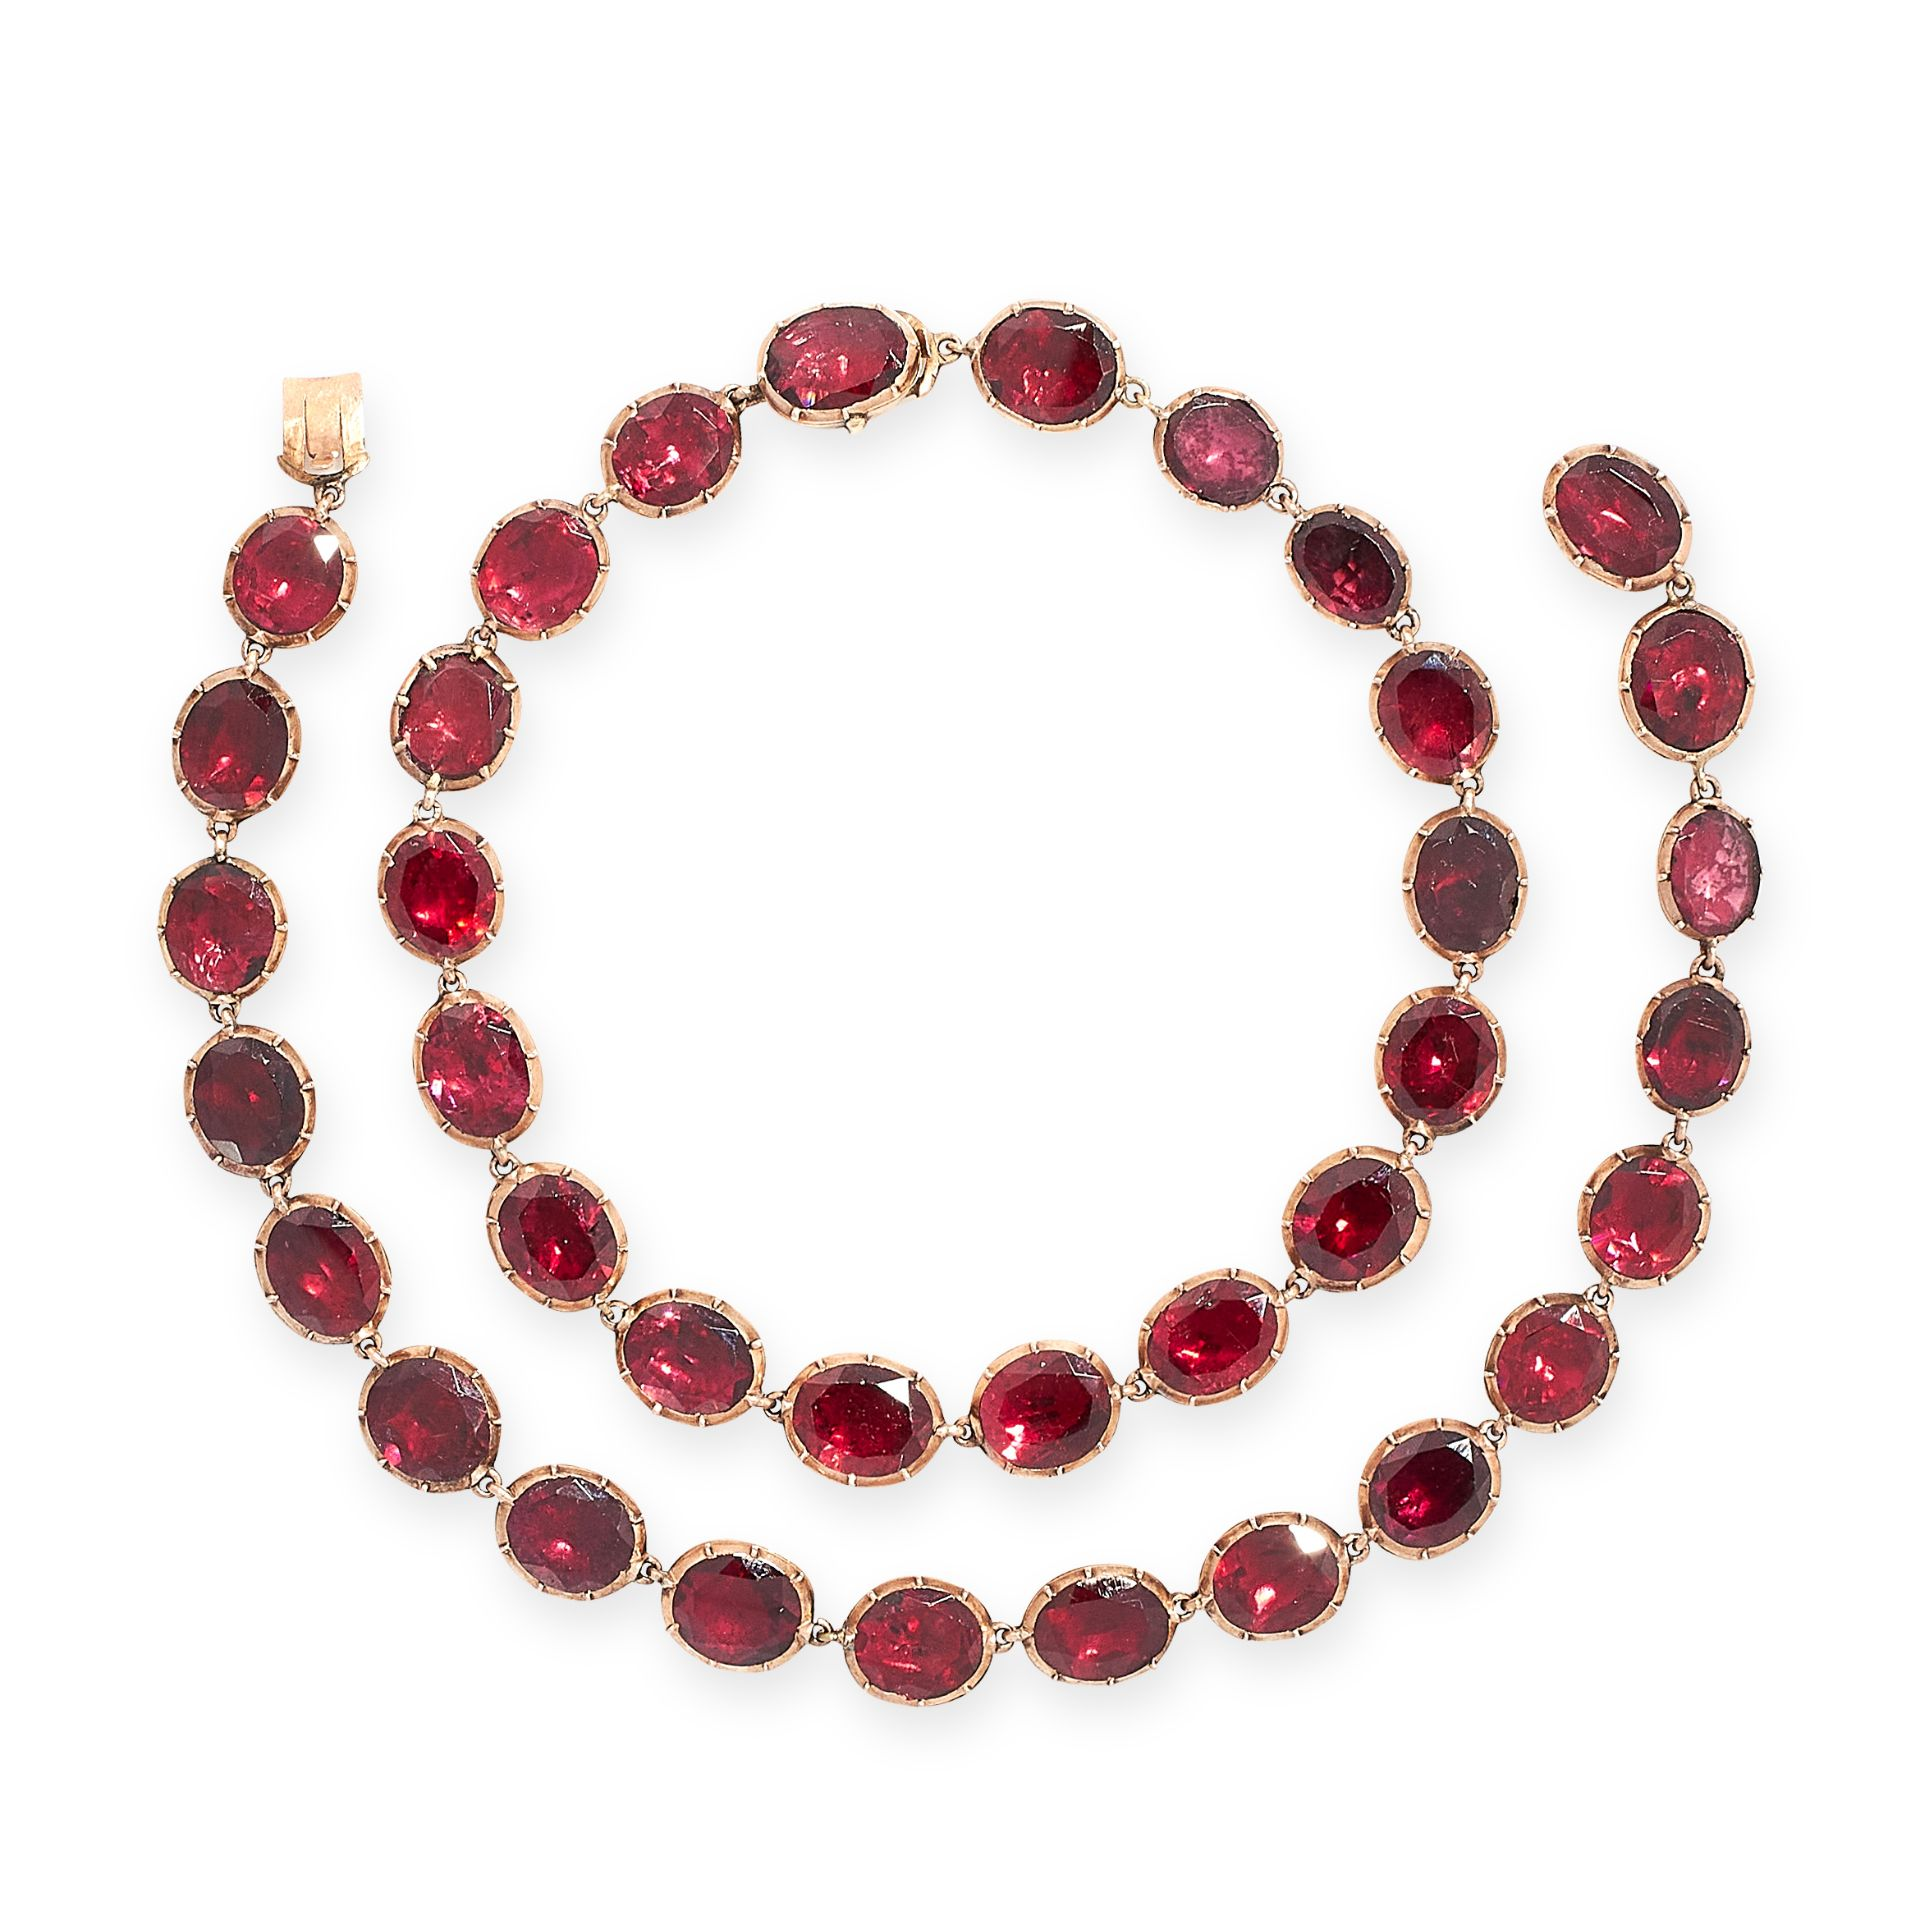 AN ANTIQUE GARNET RIVIERE NECKLACE, 19TH CENTURY in yellow gold, comprising of a single row of - Image 2 of 2